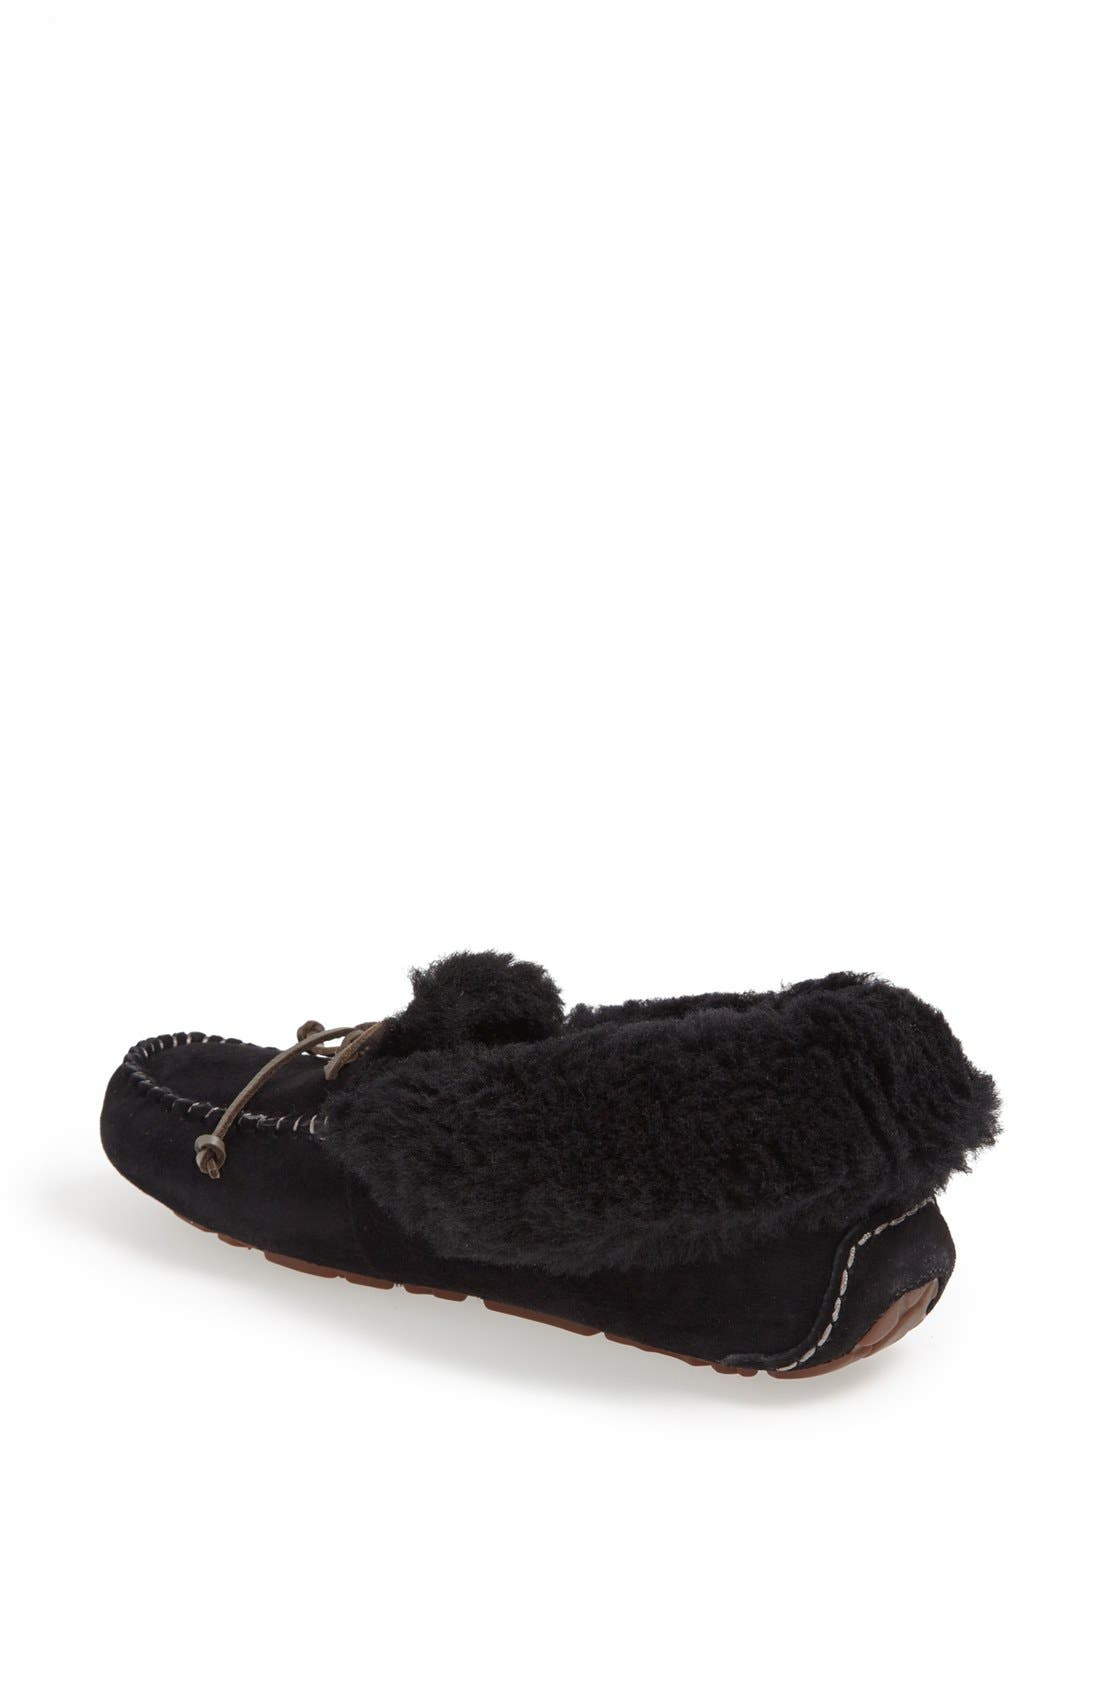 Alternate Image 2  - UGG® UGGpure™ Alena Suede Slipper Bootie (Women)